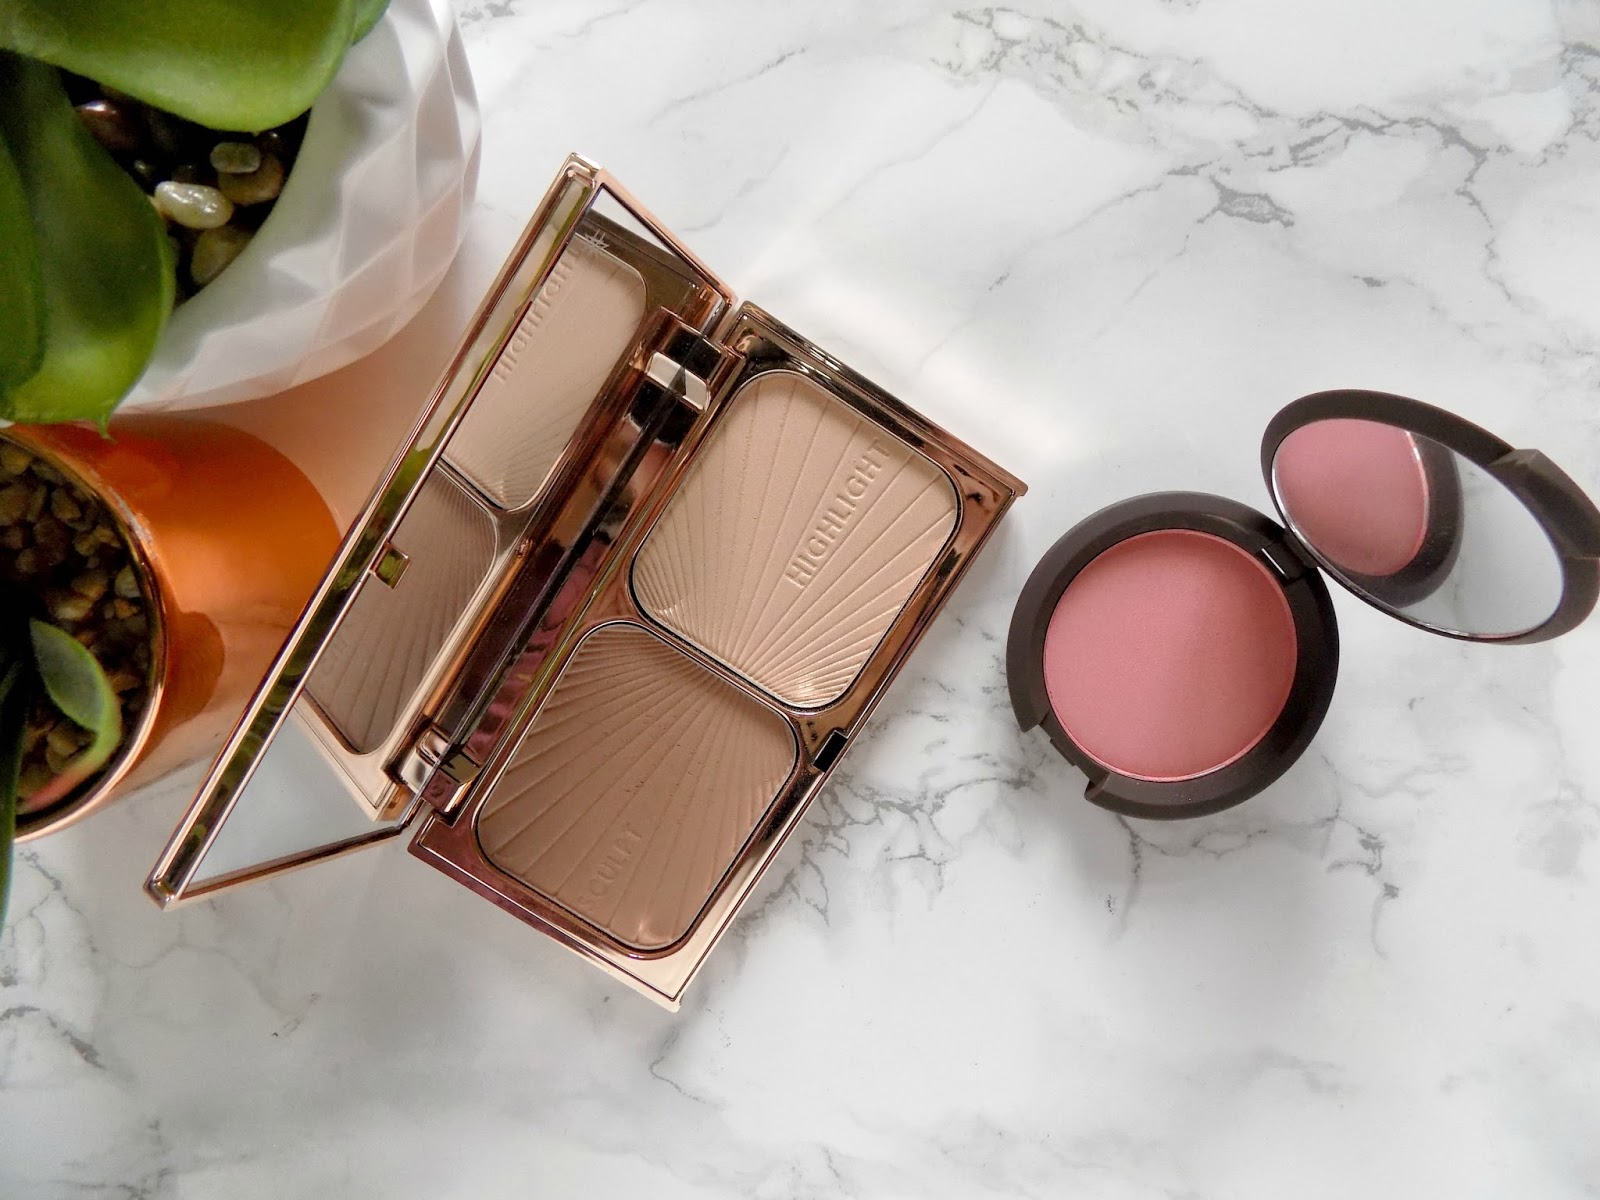 charlotte tilbury bronze and glow becca flowerchild